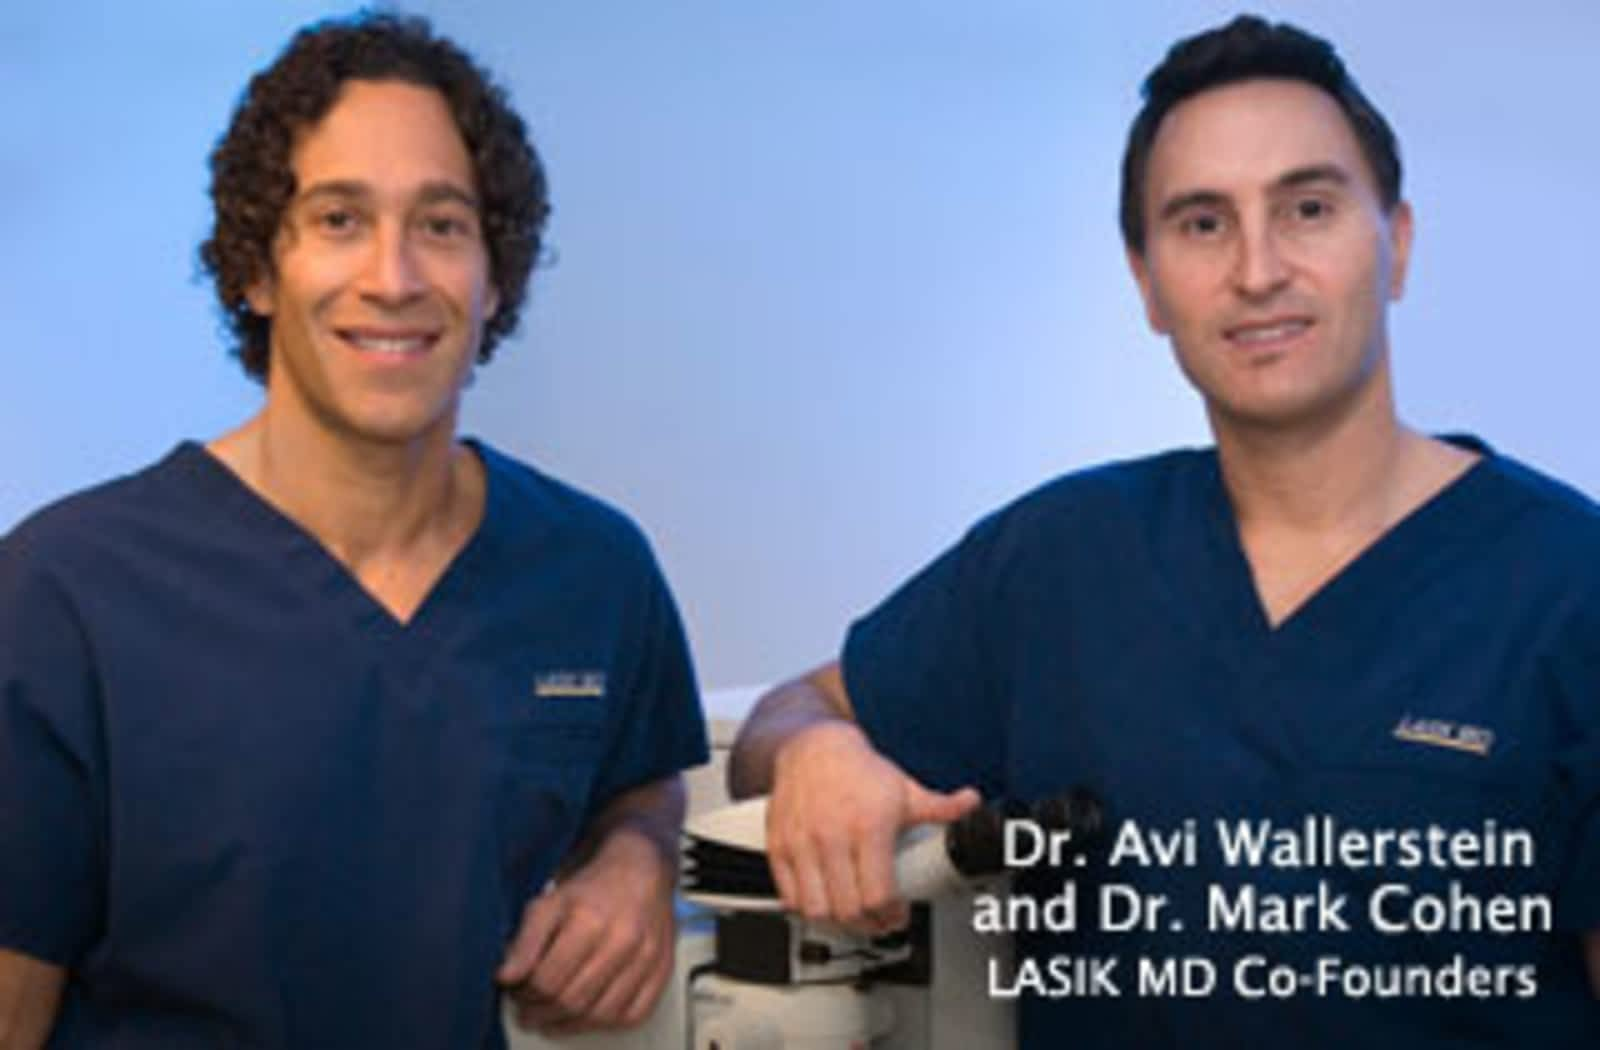 LASIK MD - 101 Frederick St, Kitchener, ON